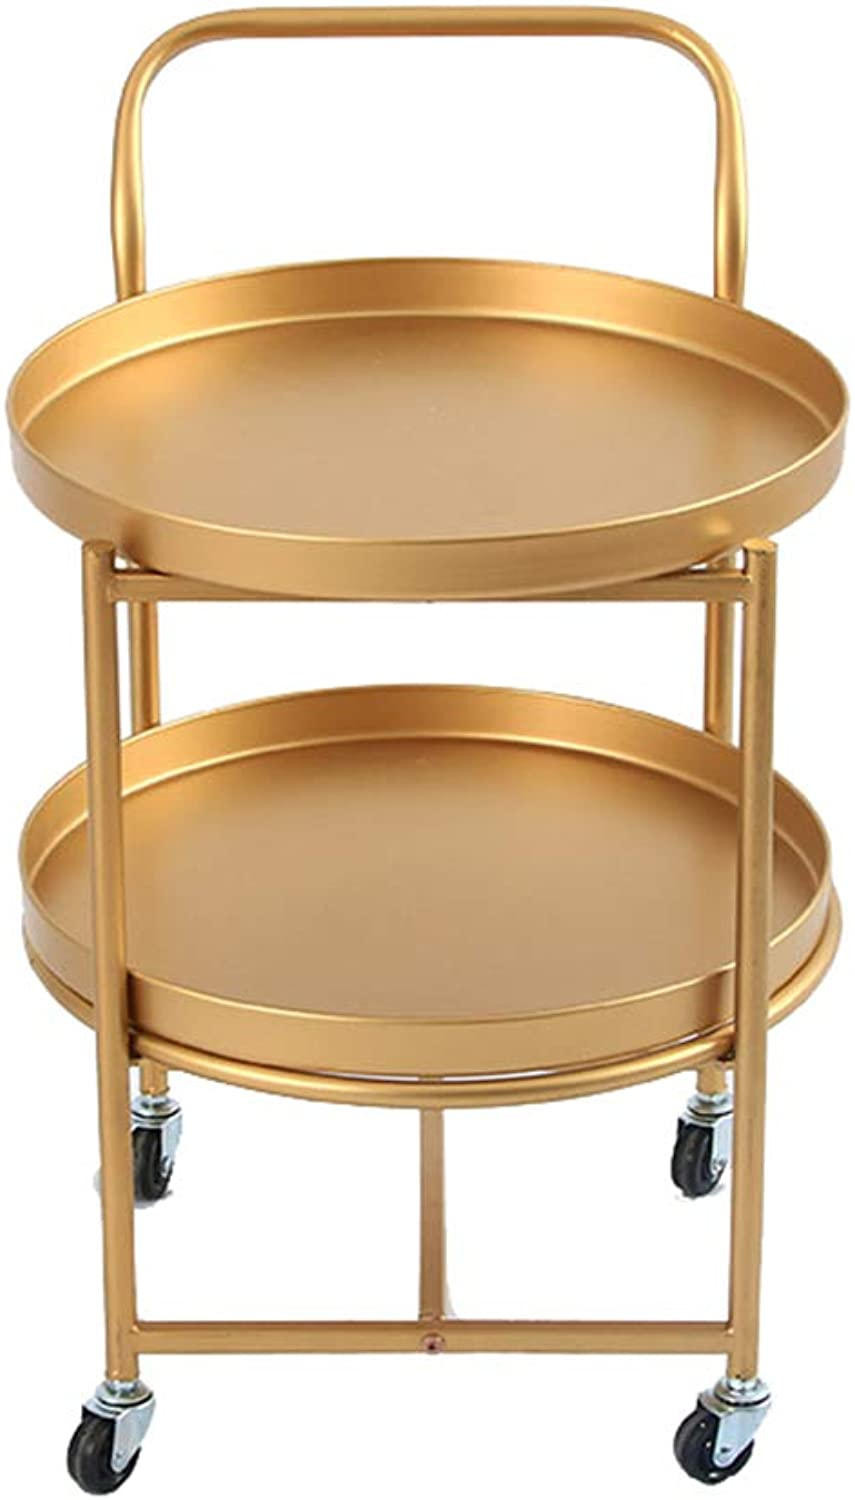 gold Double-Decker Small Coffee Table, European Round Wheel with Removable Table - Balcony Living Room Storage Stand